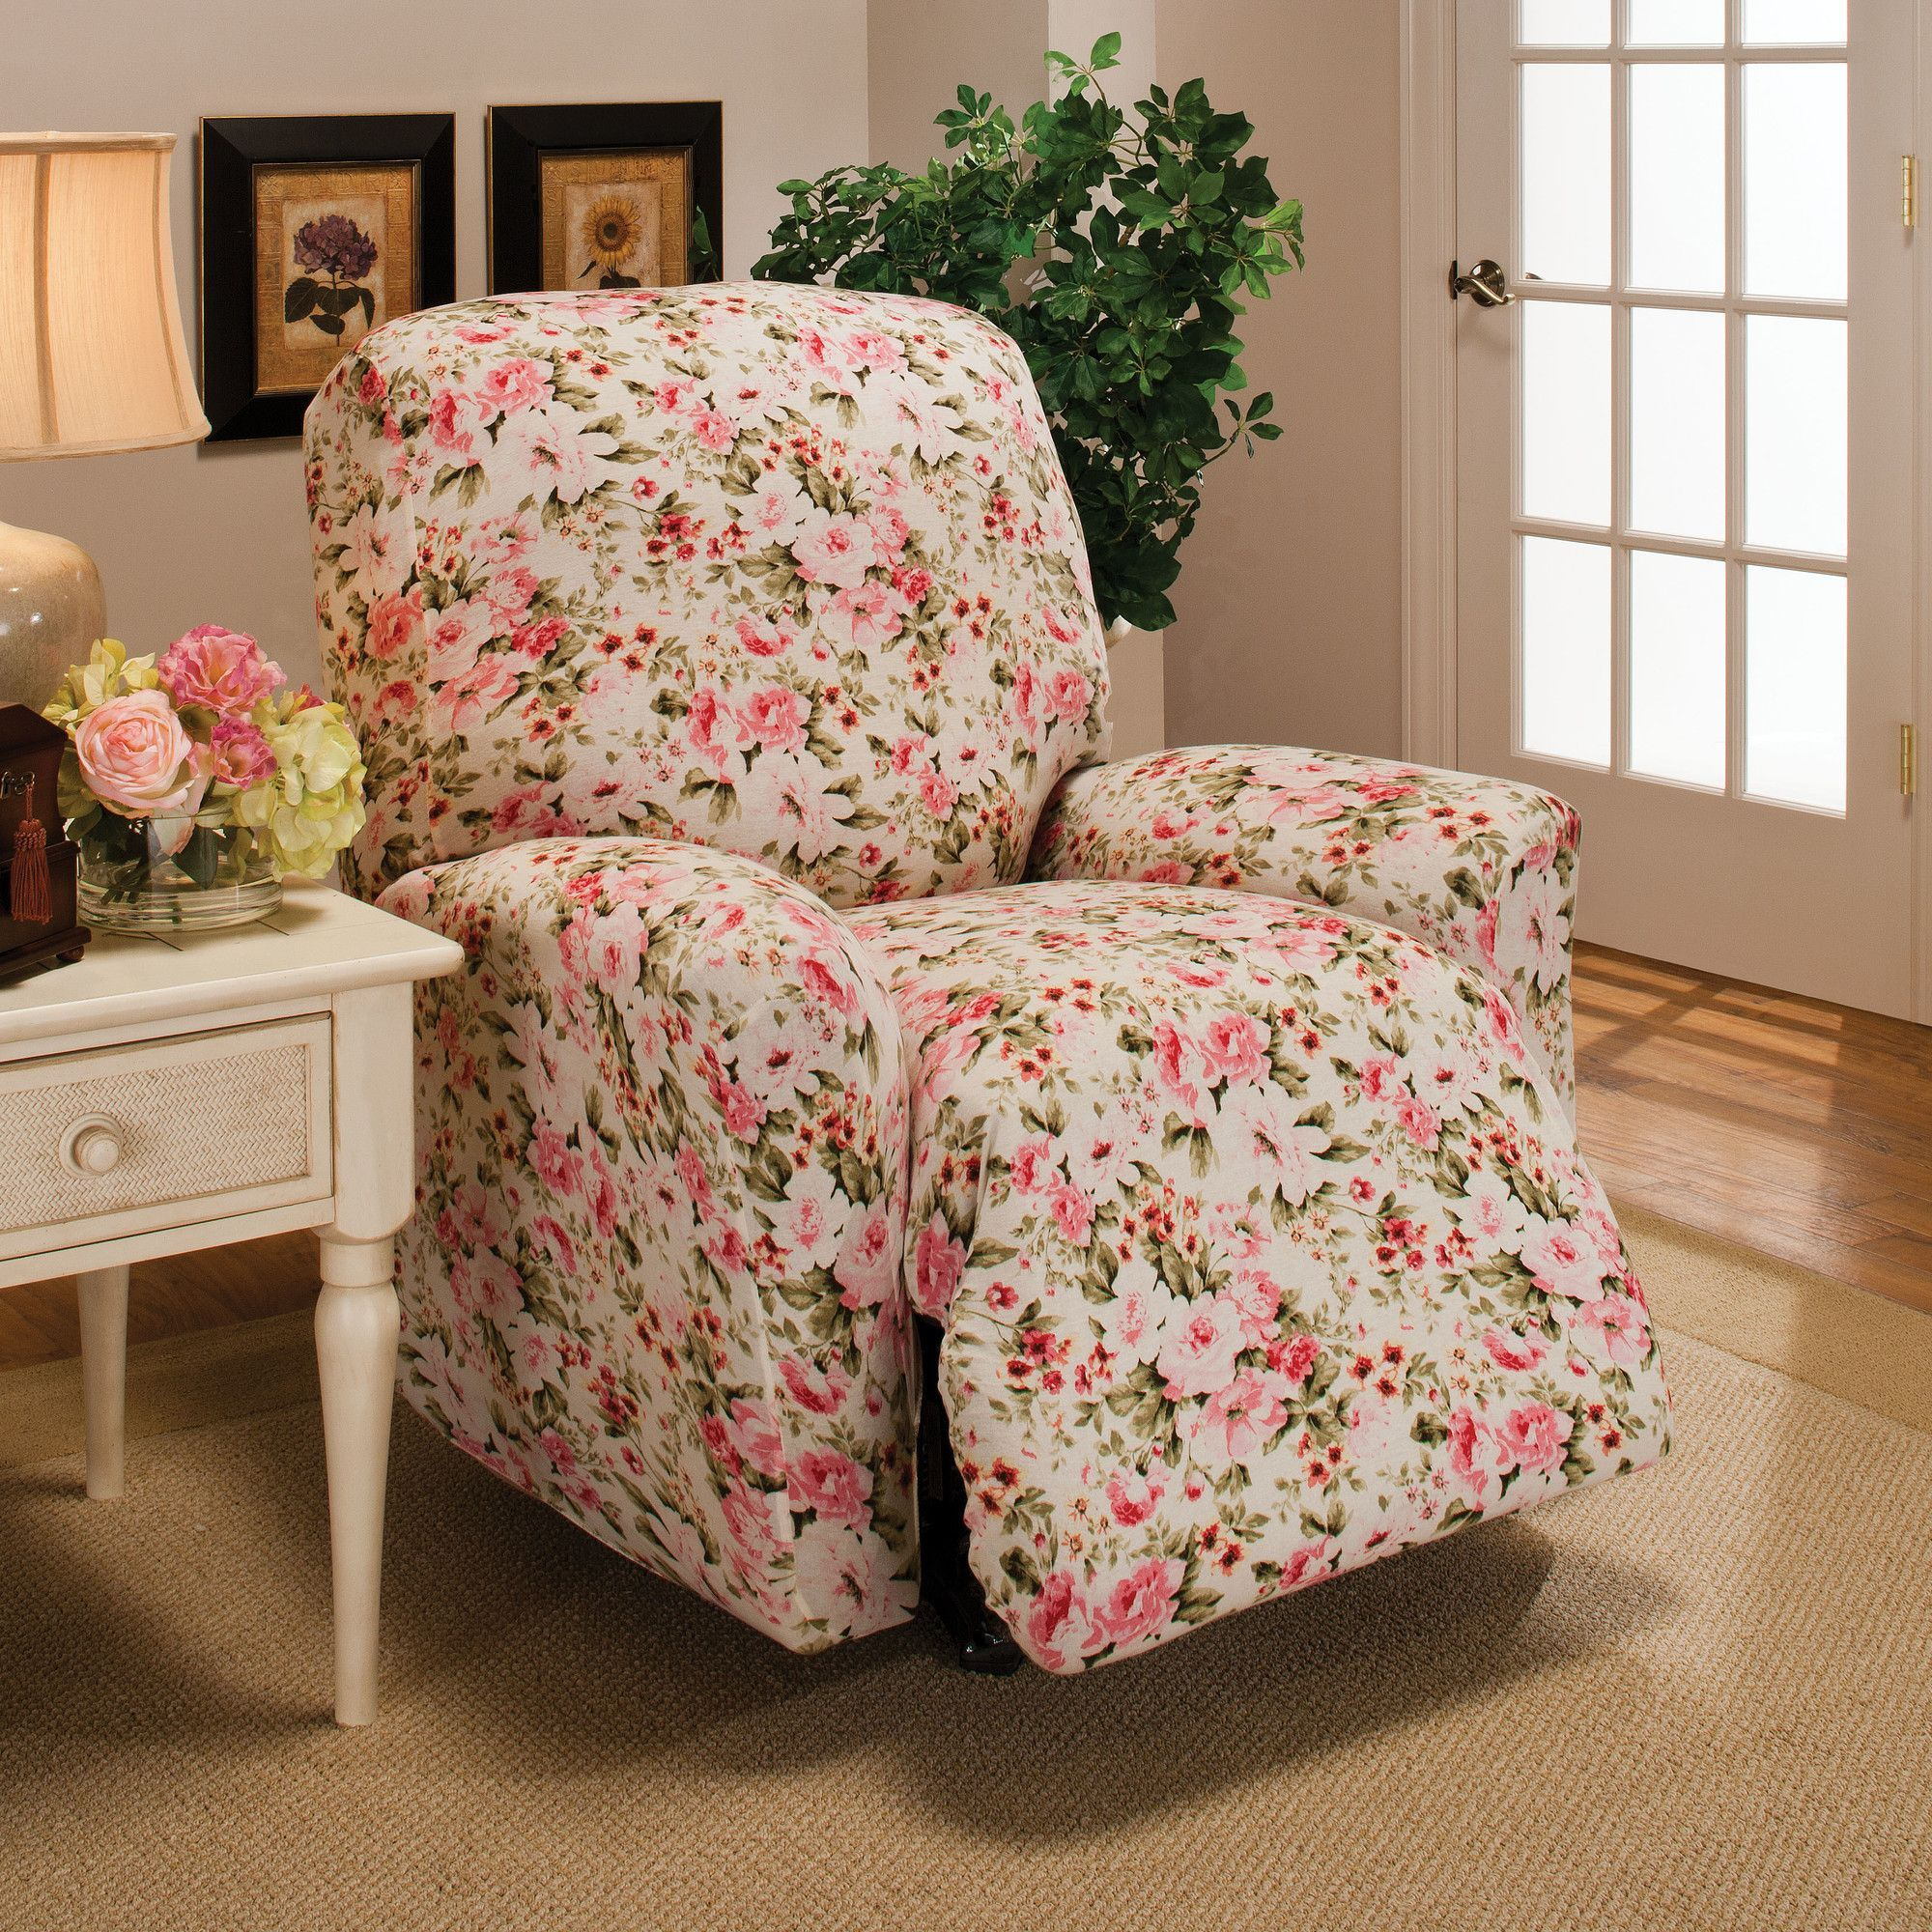 recliner recliners today for product sure fit stretch home stripe free overstock slipcovers slipcover shipping garden